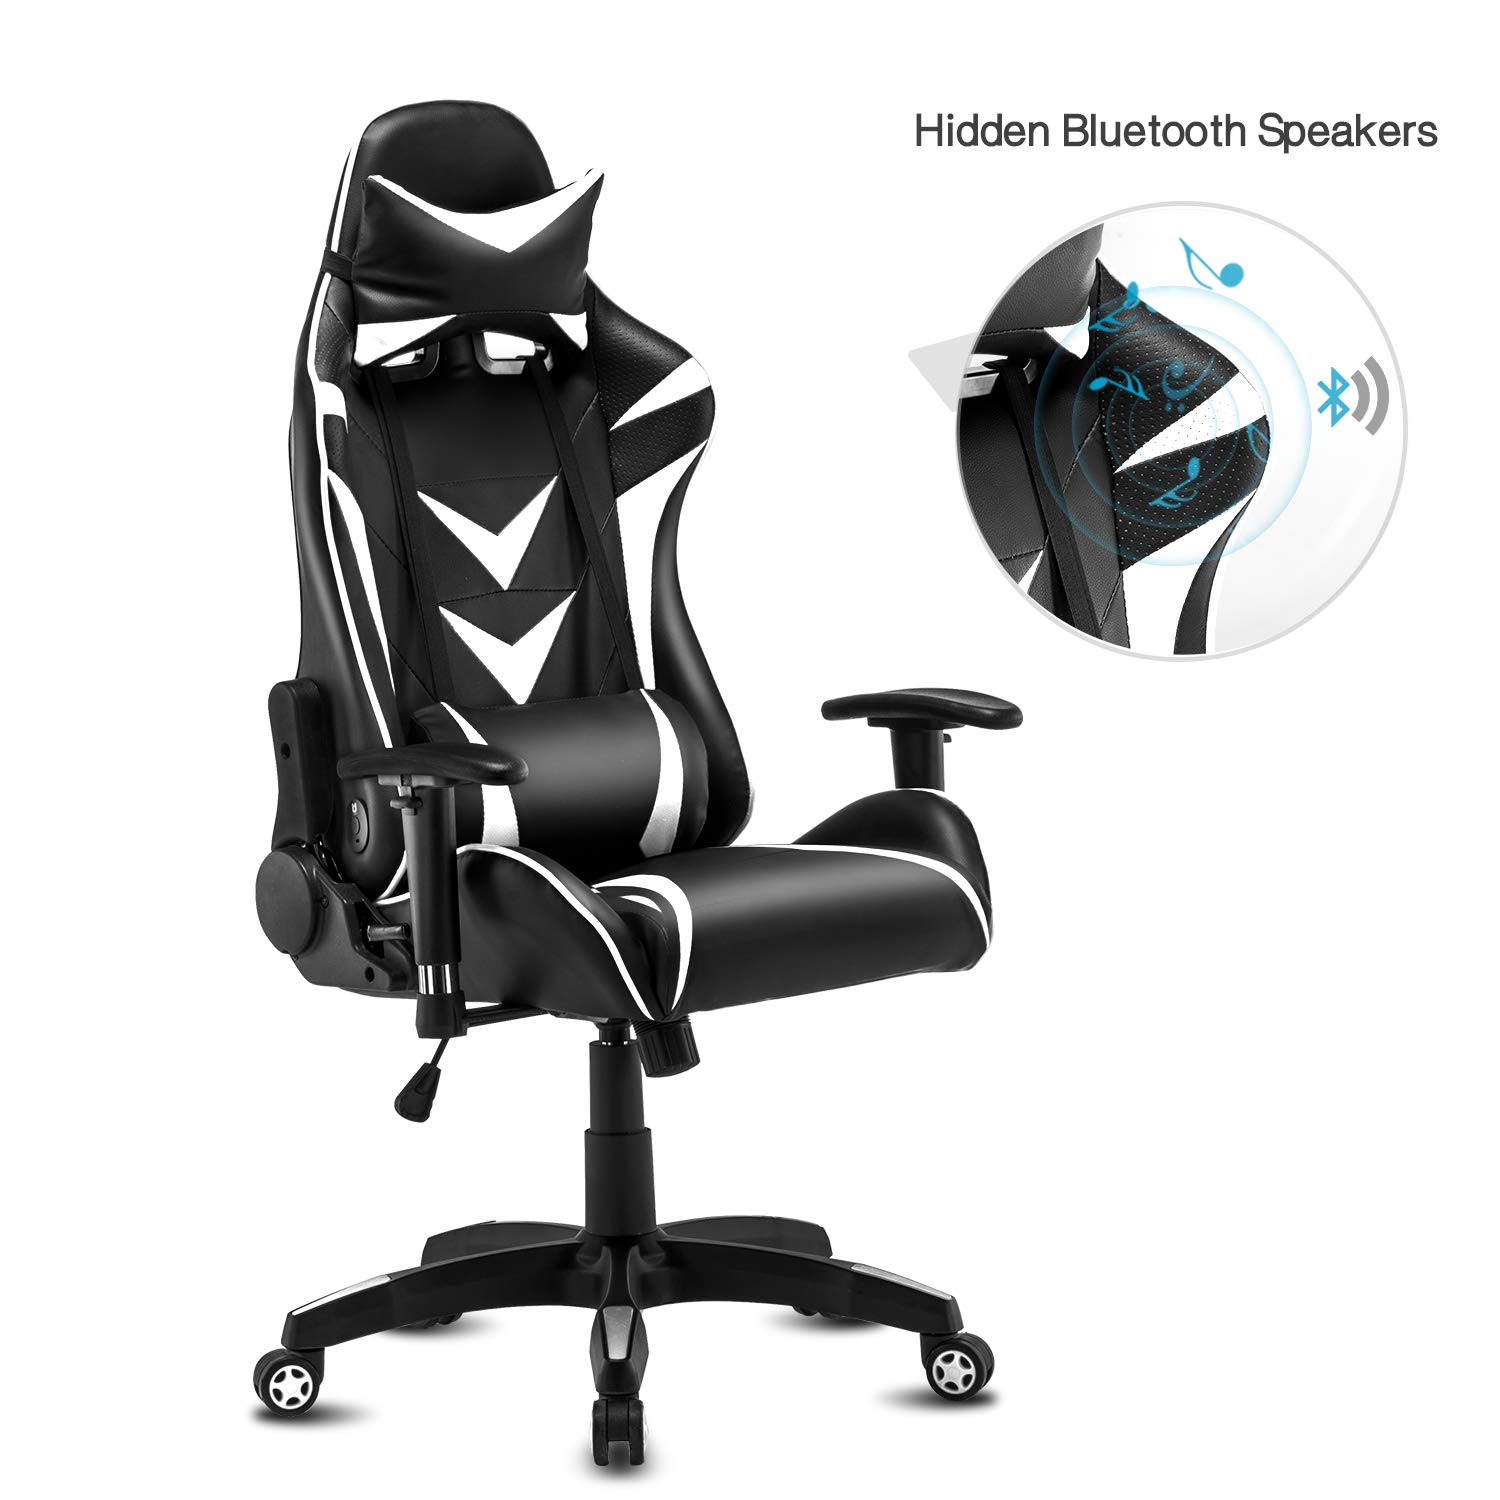 Modern-Depo High-Back Swivel Gaming Chair Recliner with Bluetooth 4.1 Speakers & Lumbar Support & Headrest   Height Adjustable Ergonomic Office Desk Chair - Black & White by Modern-Depo